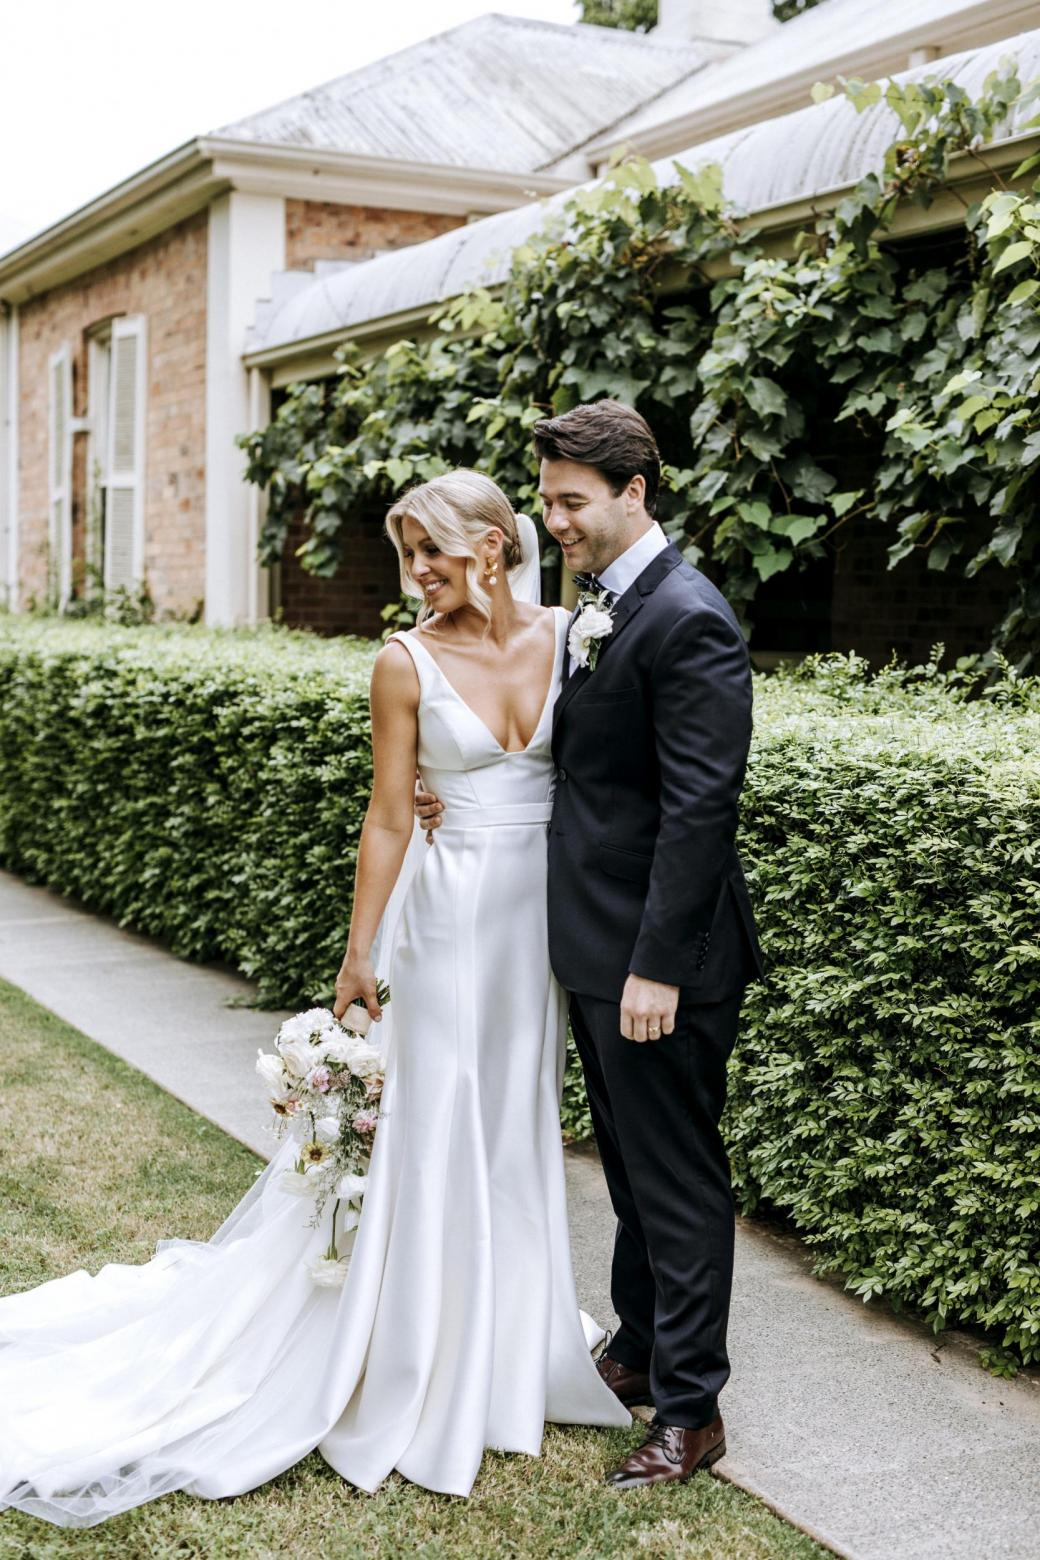 Real bride Isobel wore the Bespoke Taryn/Prea wedding dress by Karen Willis Holmes.